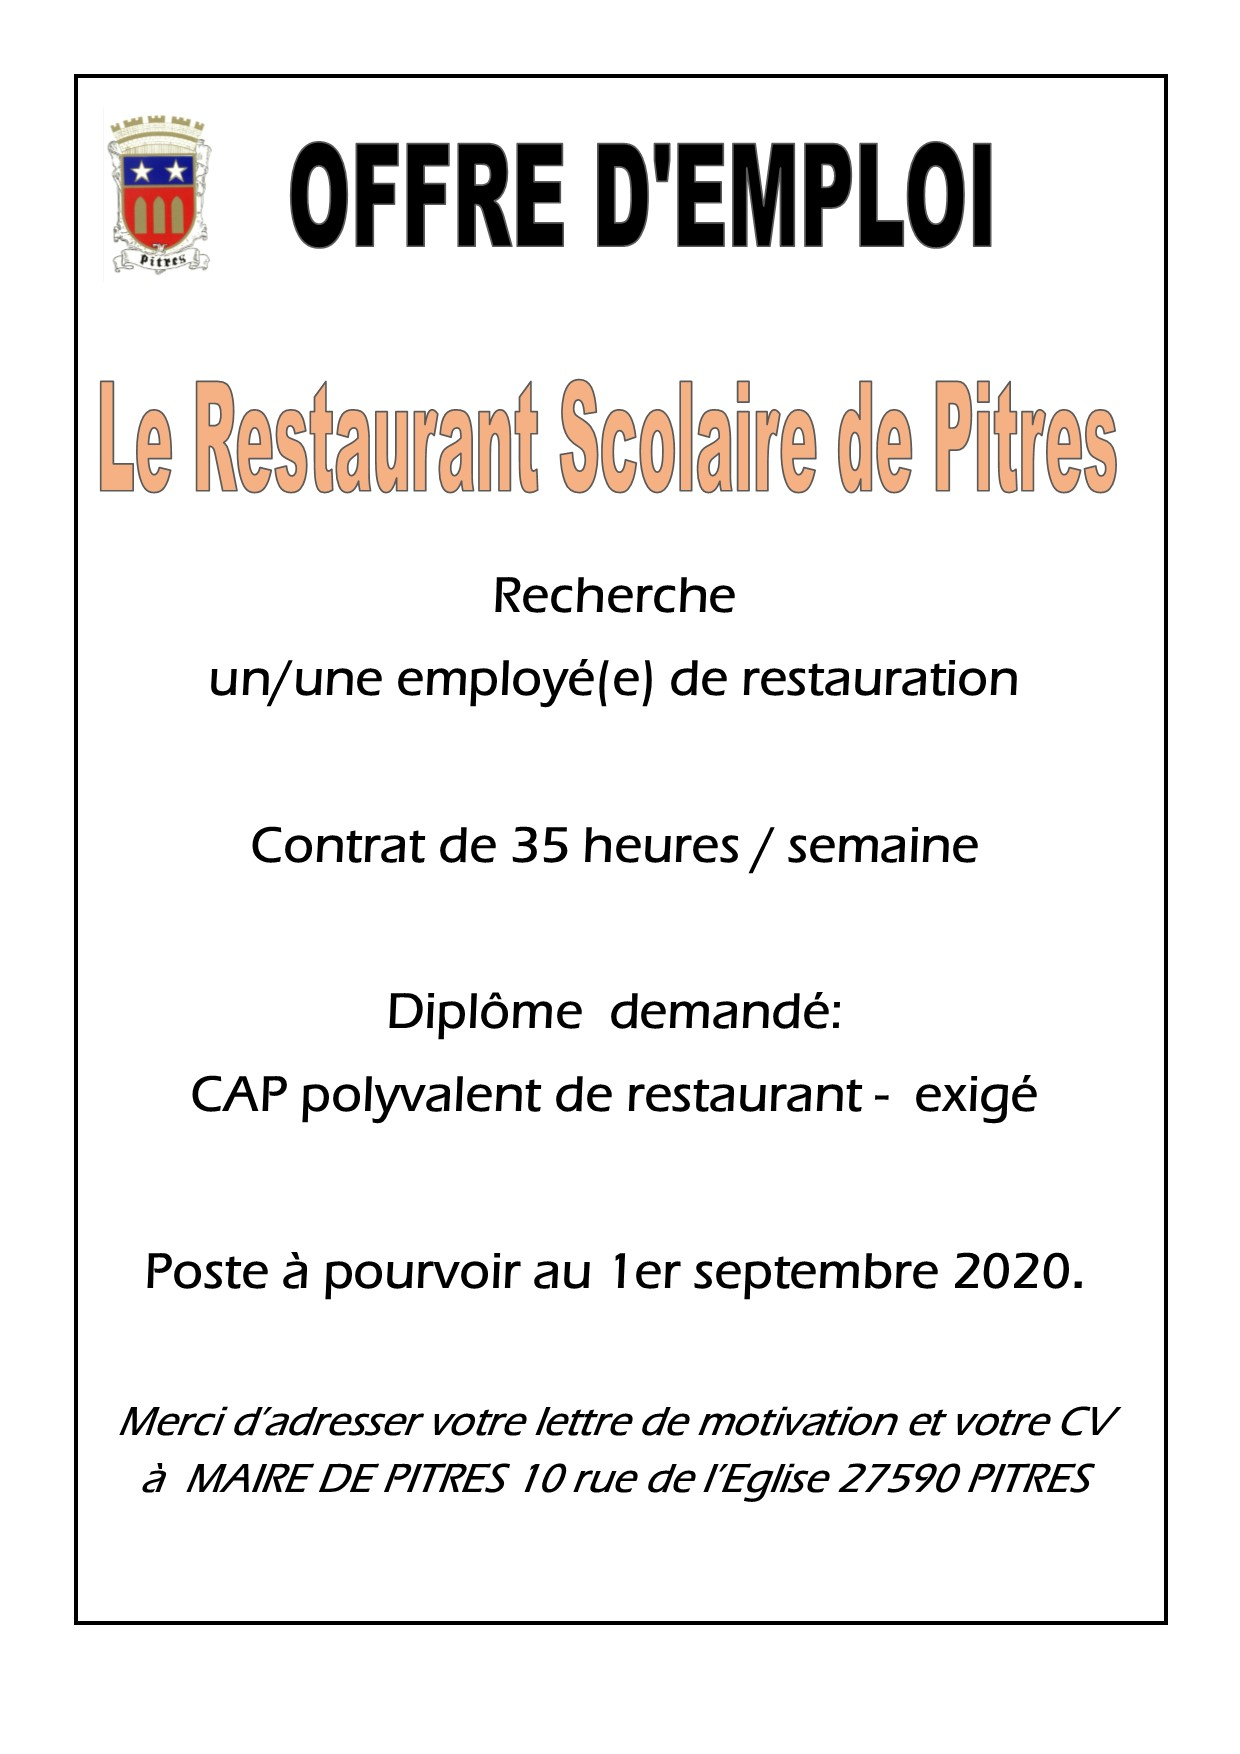 OFFRE EMPLOI CANTINE